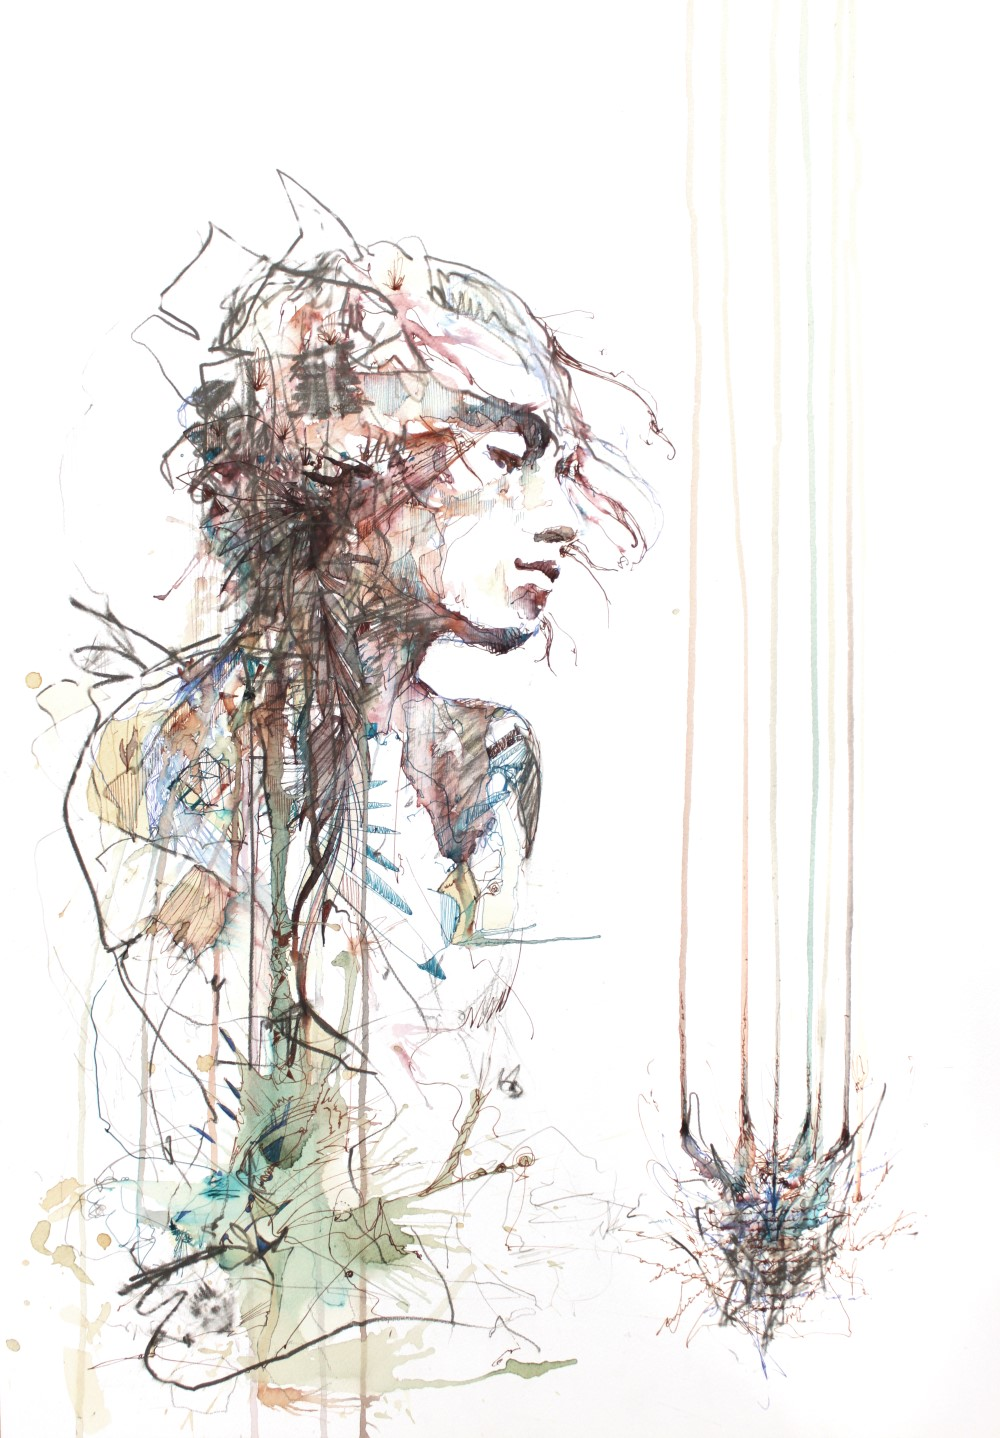 Coma by Carne Griffiths